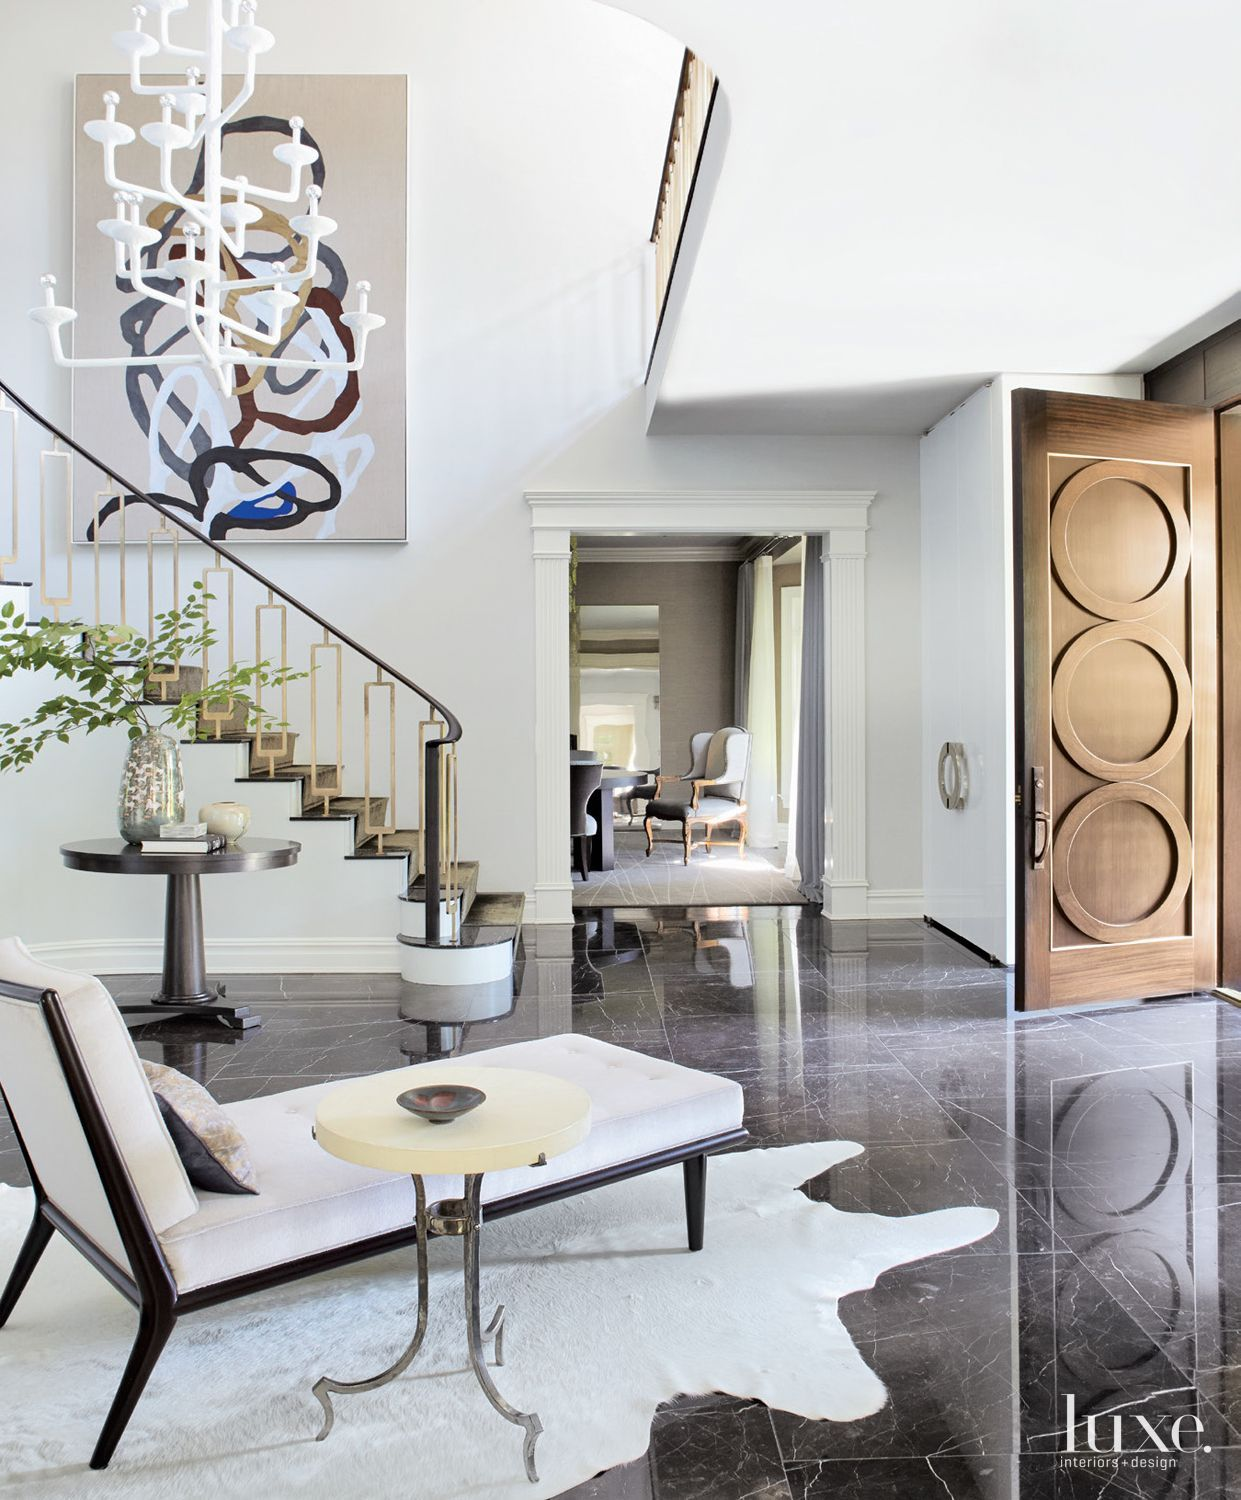 33 Staircase Designs Enriching Modern Interiors With: 35 Foyers With Statement Art Pieces In 2019